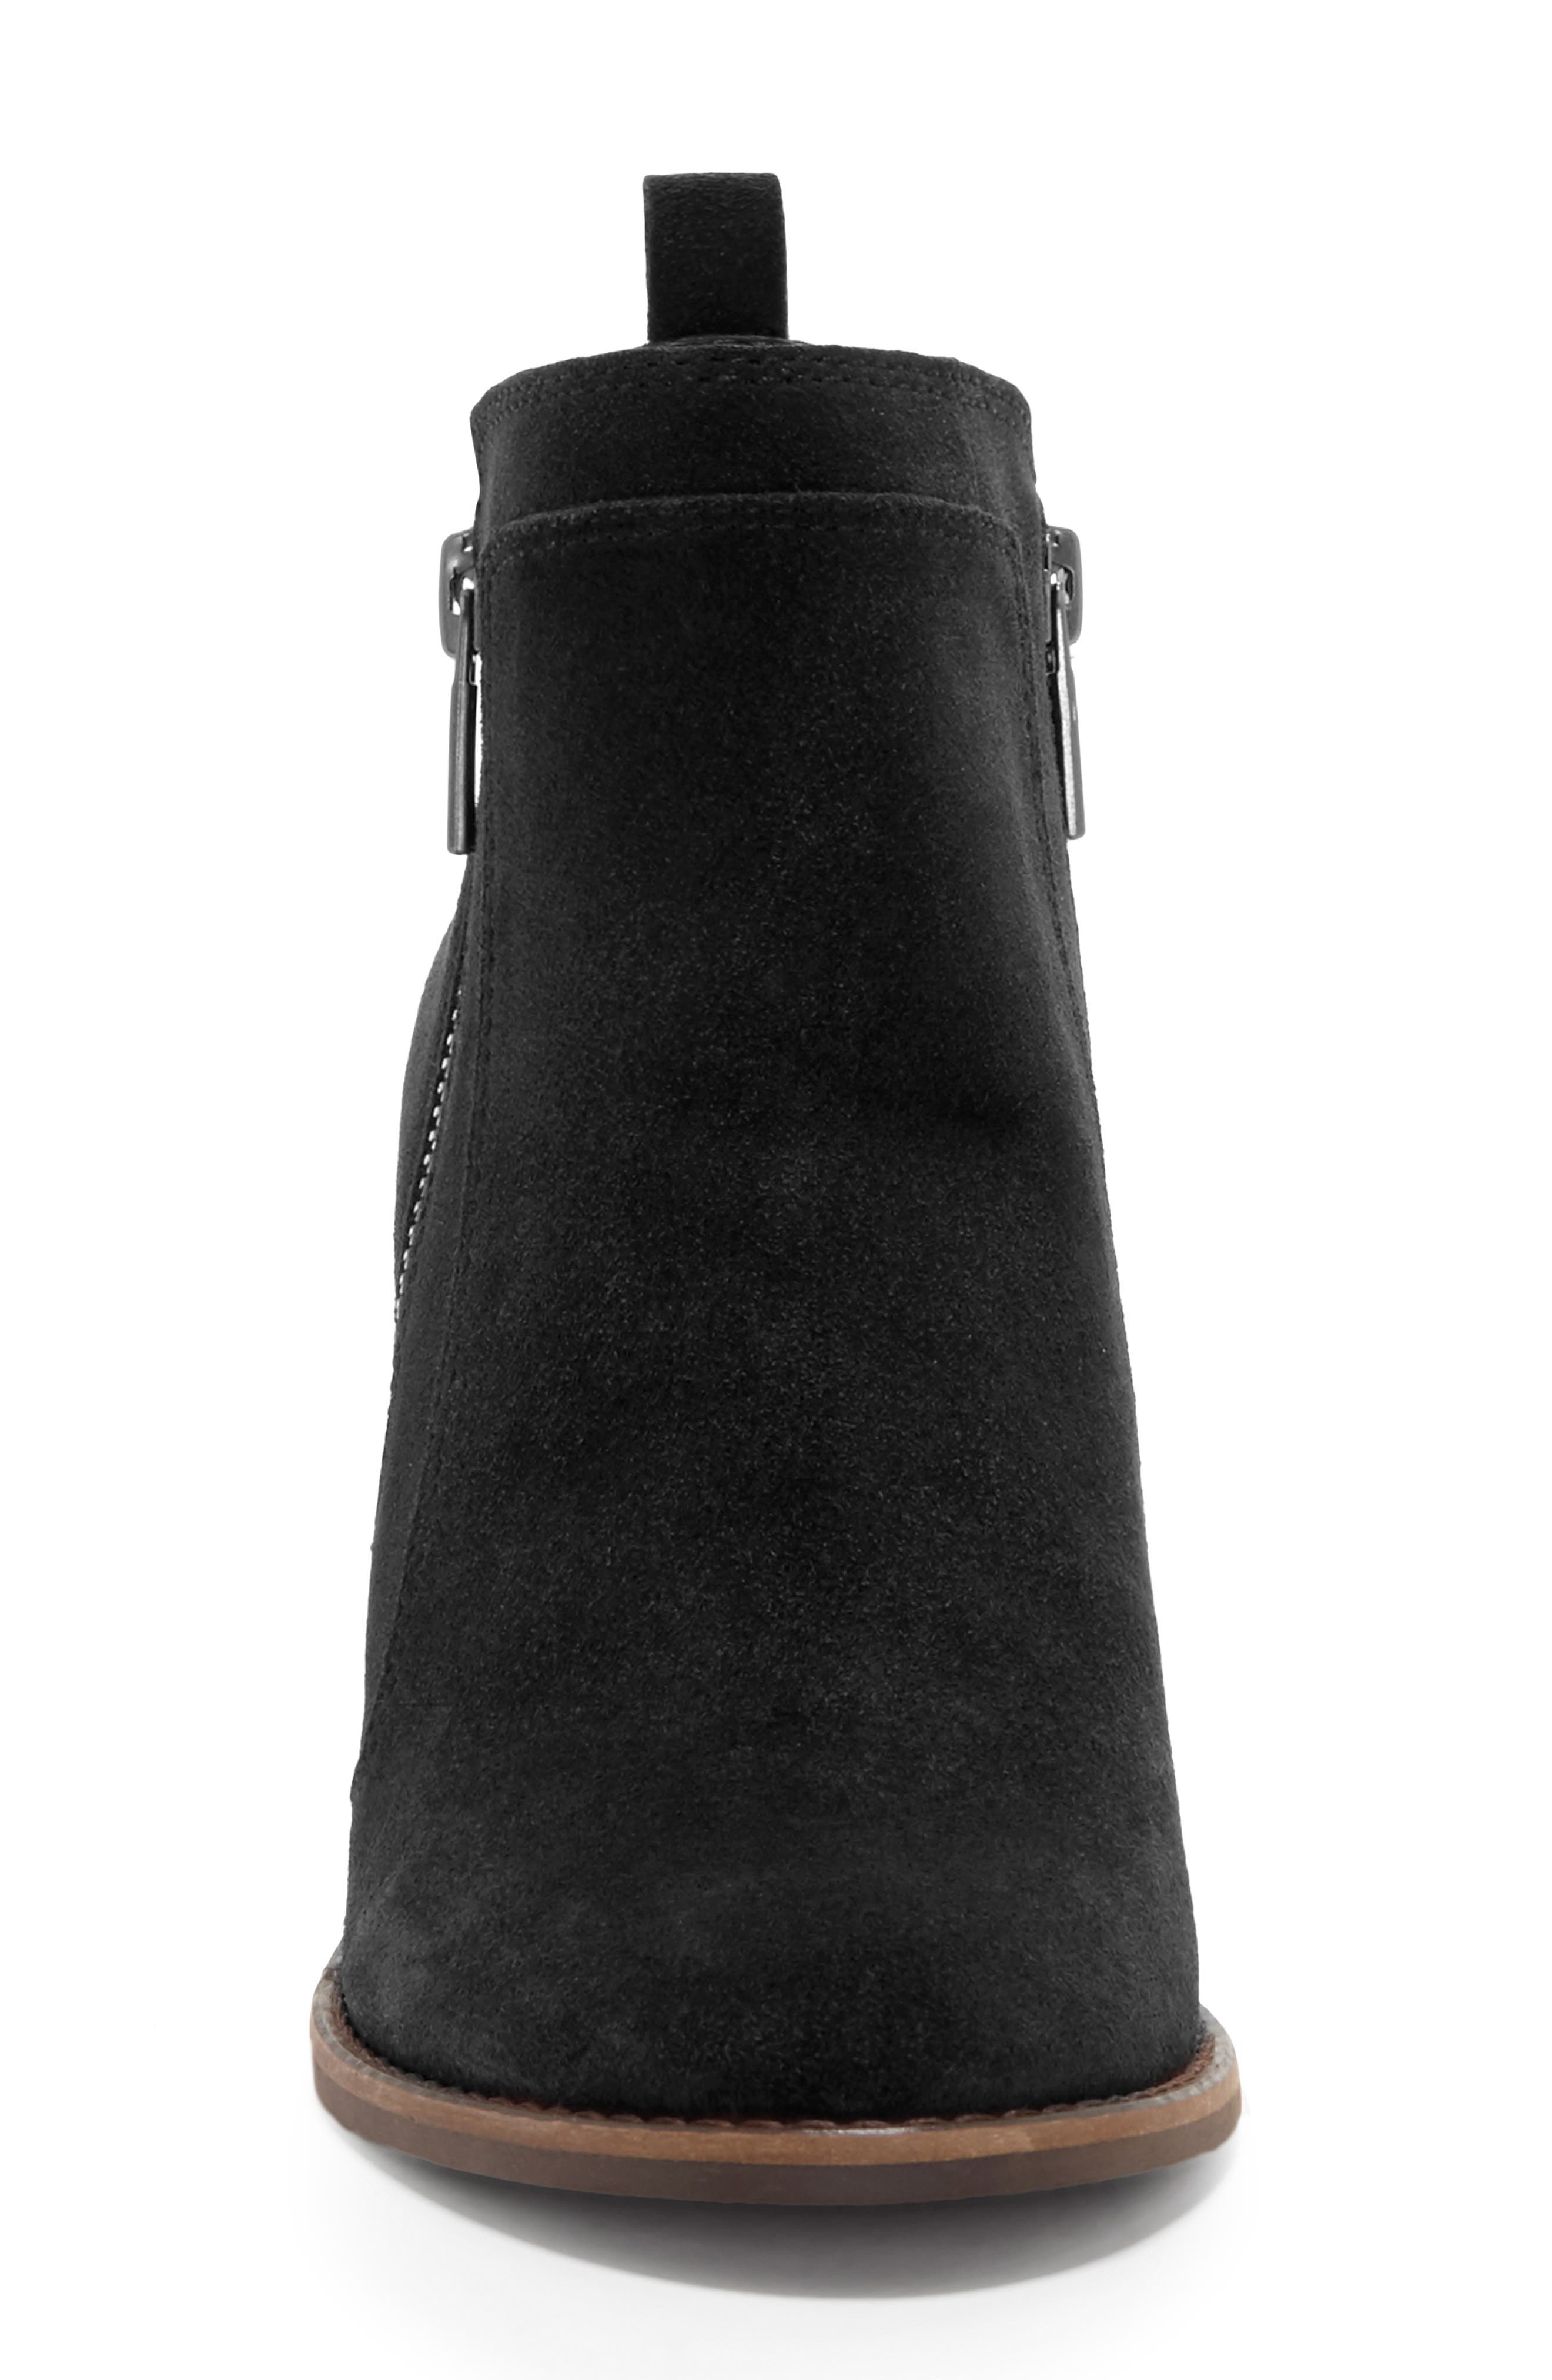 LUCKY BRAND, Yahir Wedge Bootie, Alternate thumbnail 4, color, BLACK SUEDE